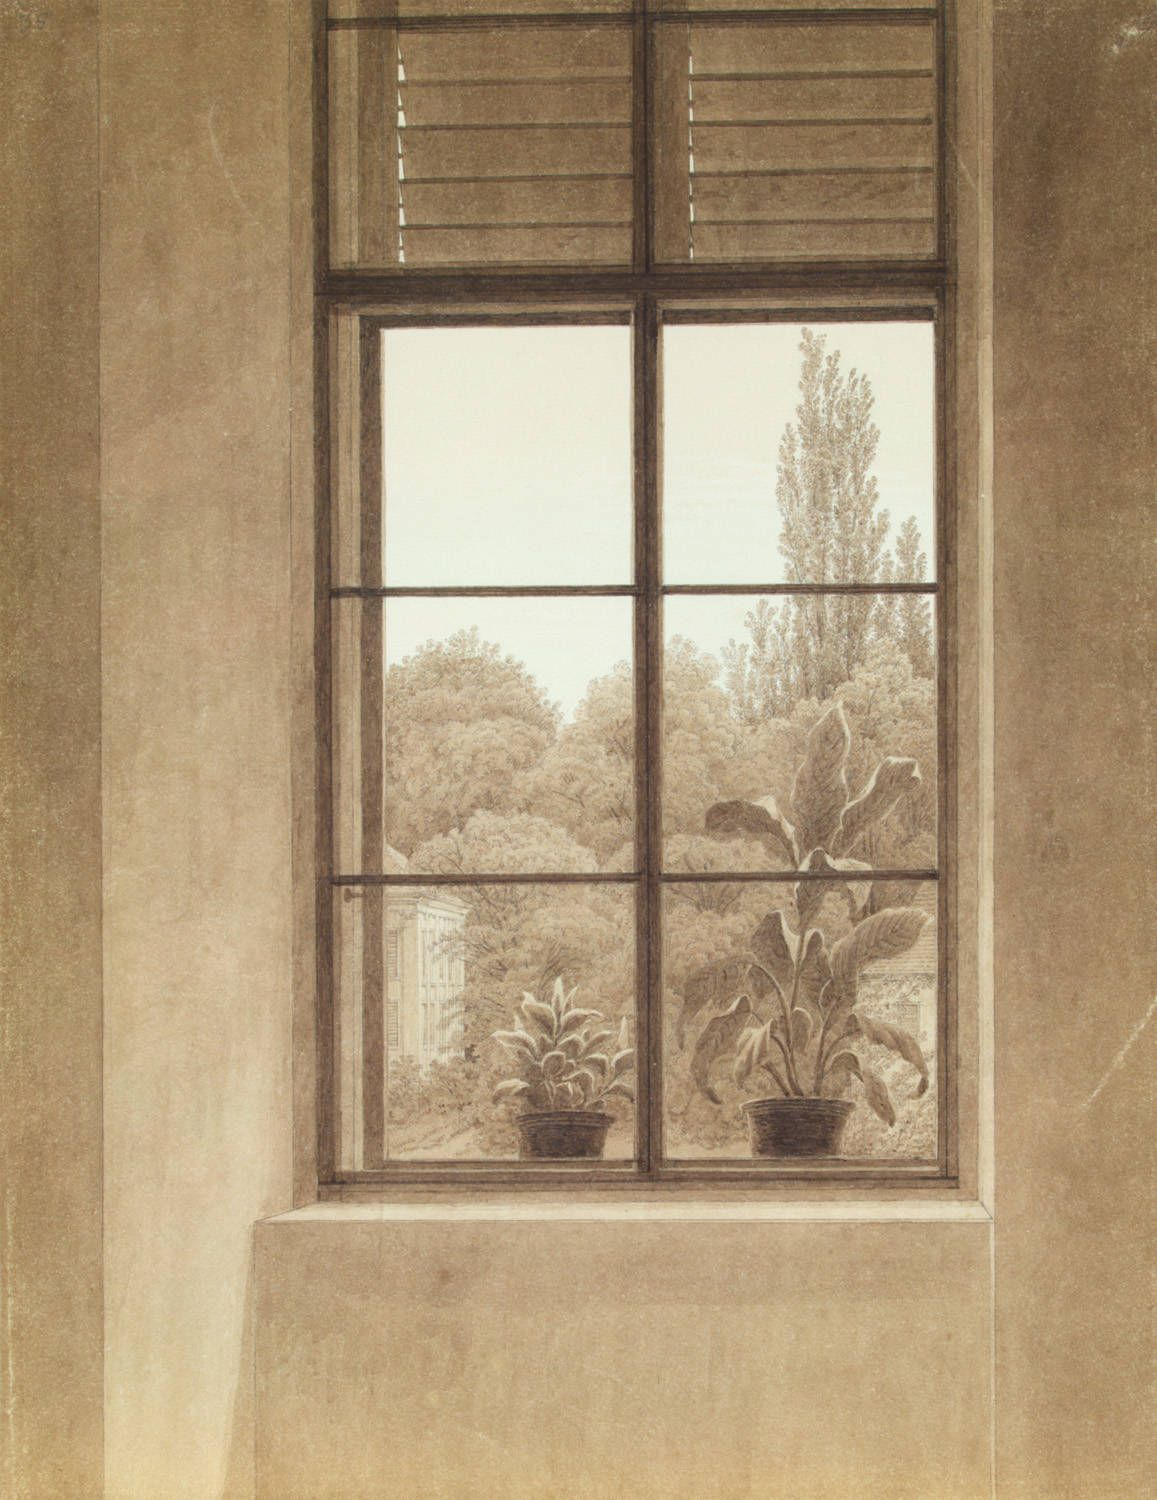 Caspar David Friedrich (German, 1774-1840). Window Looking over the Park, ca. 1837